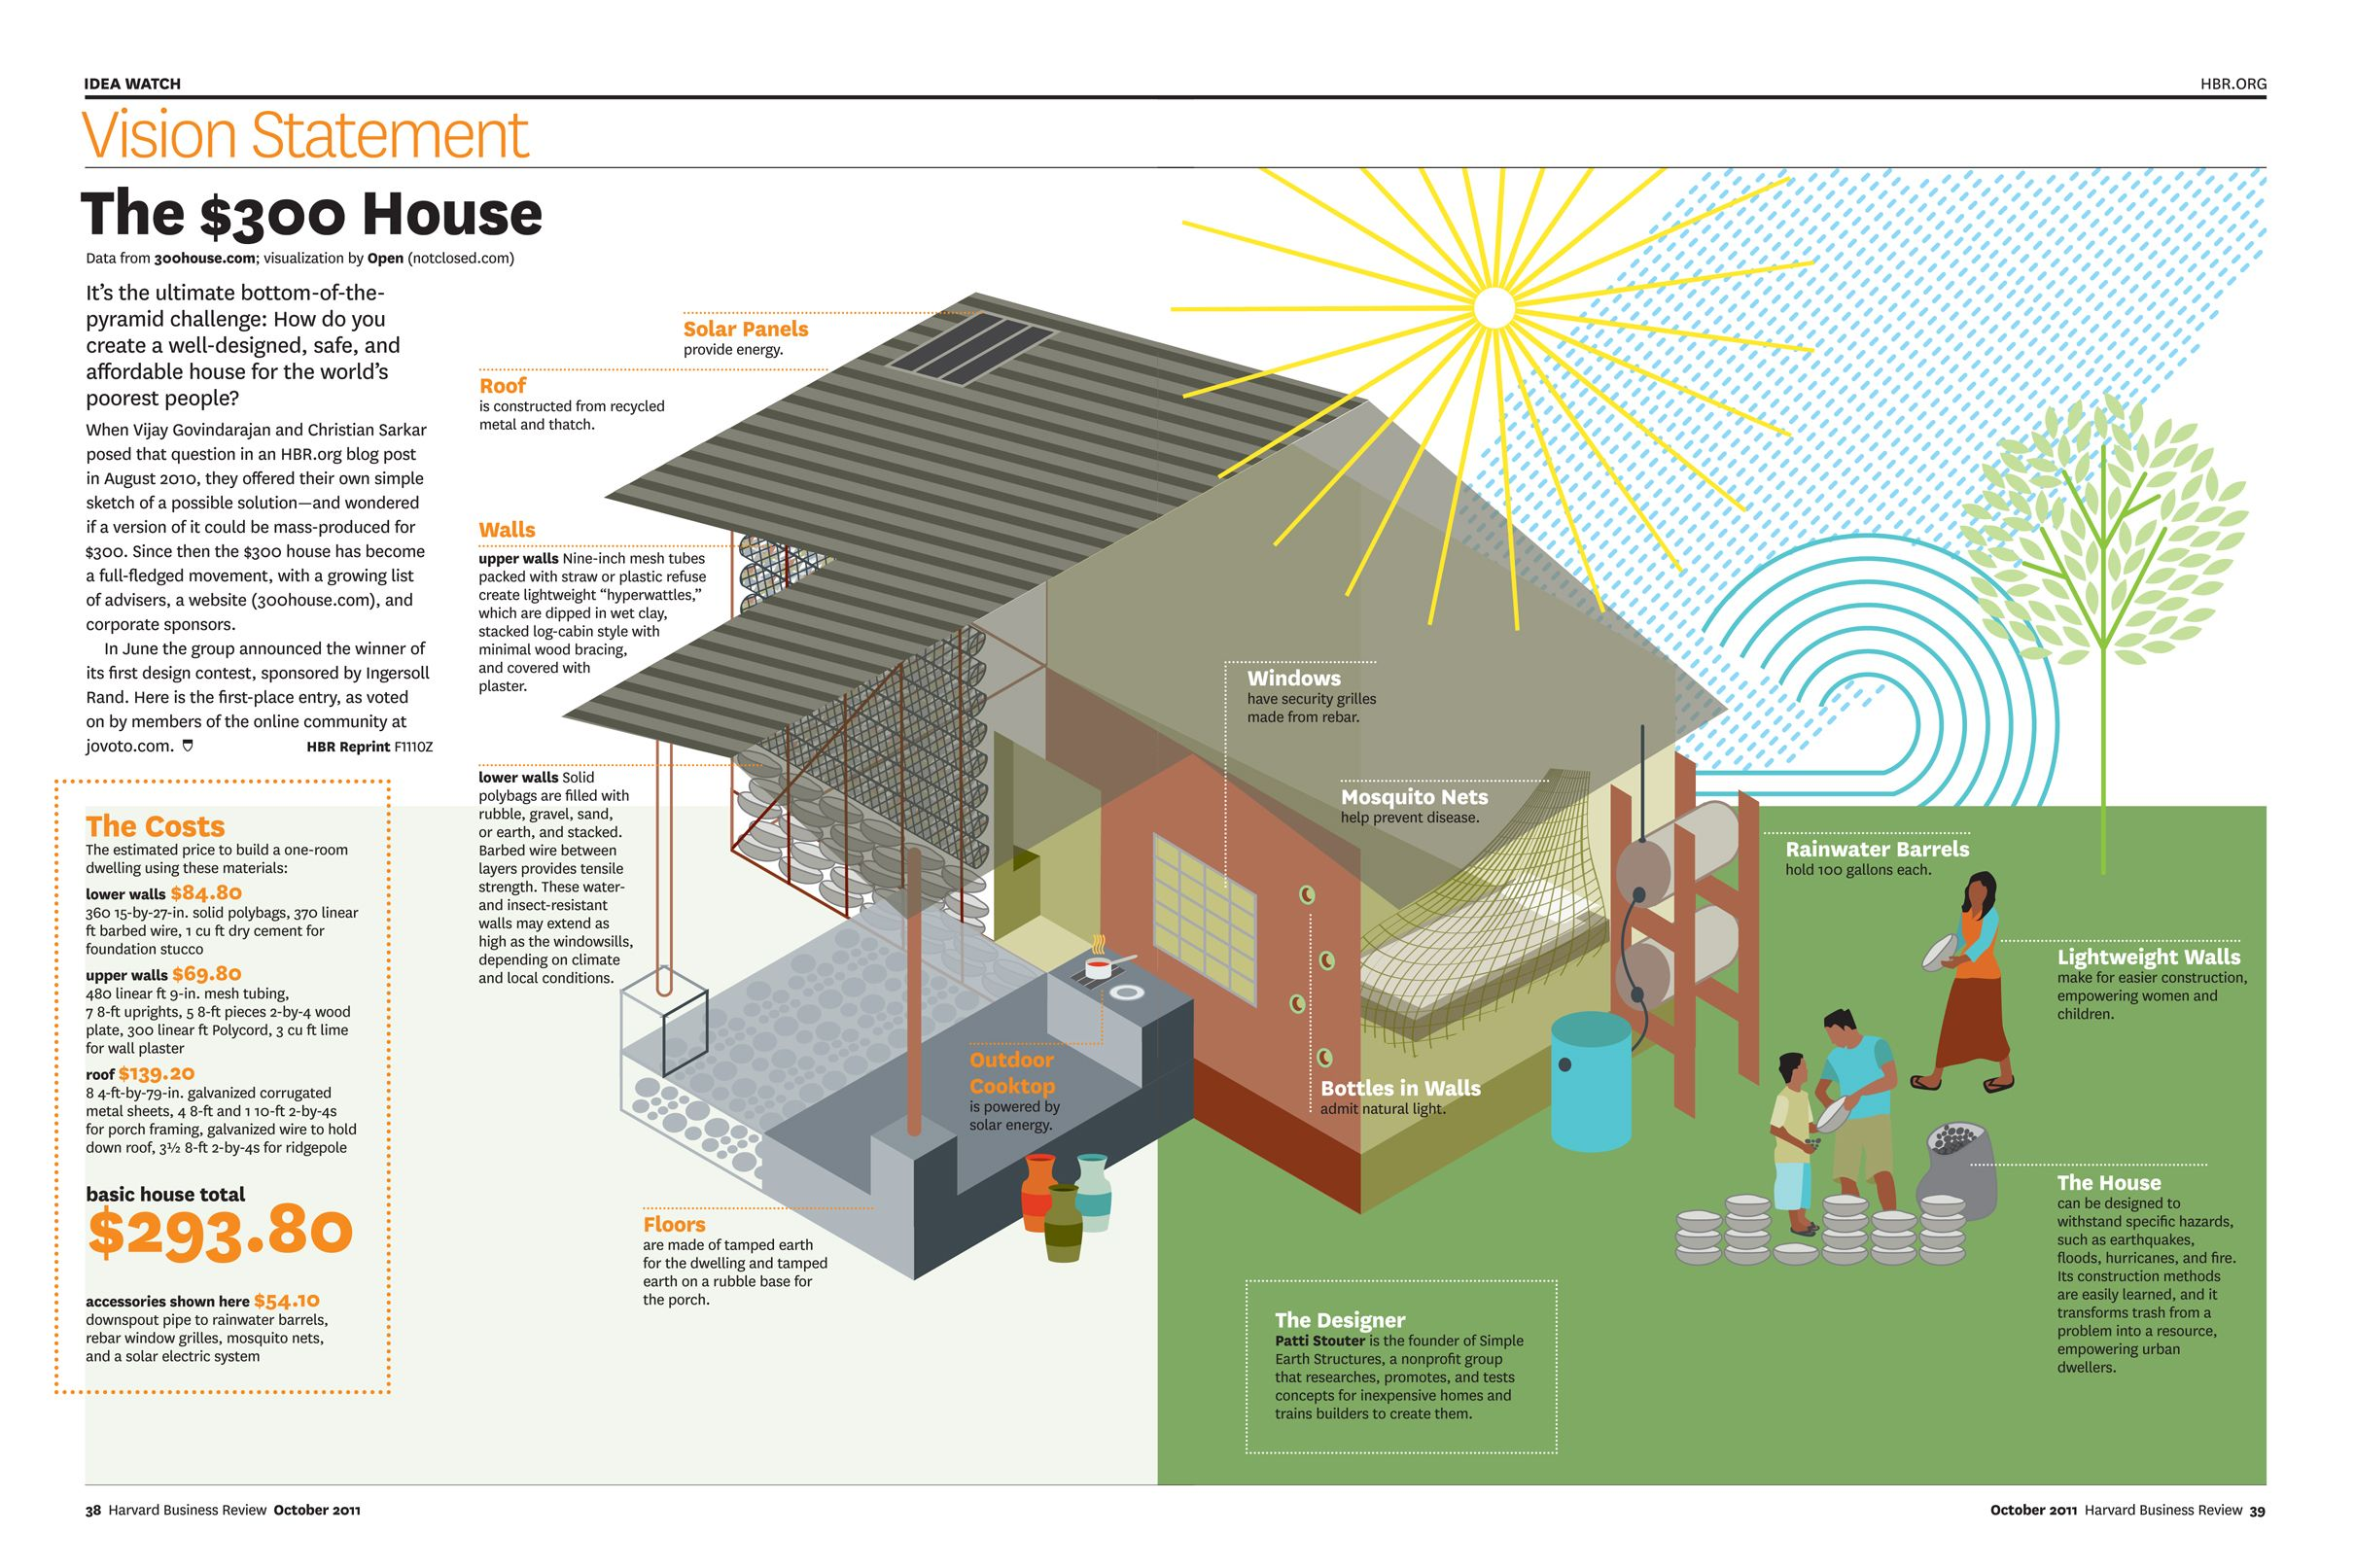 The 300 House House Vision Statement Harvard Business Review